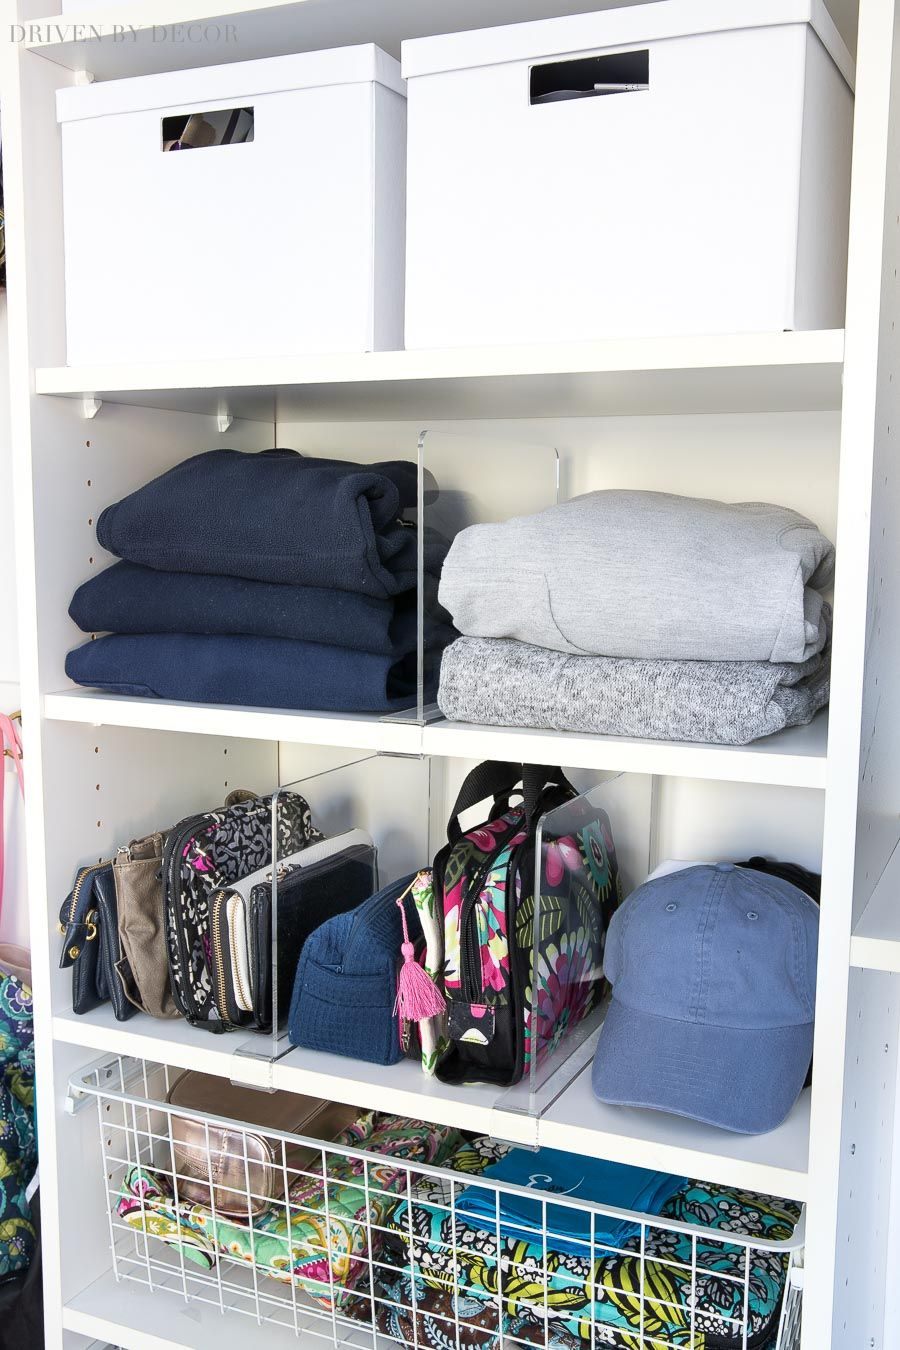 My Five Favorite Ways to Organize Room by Room Shelf dividers